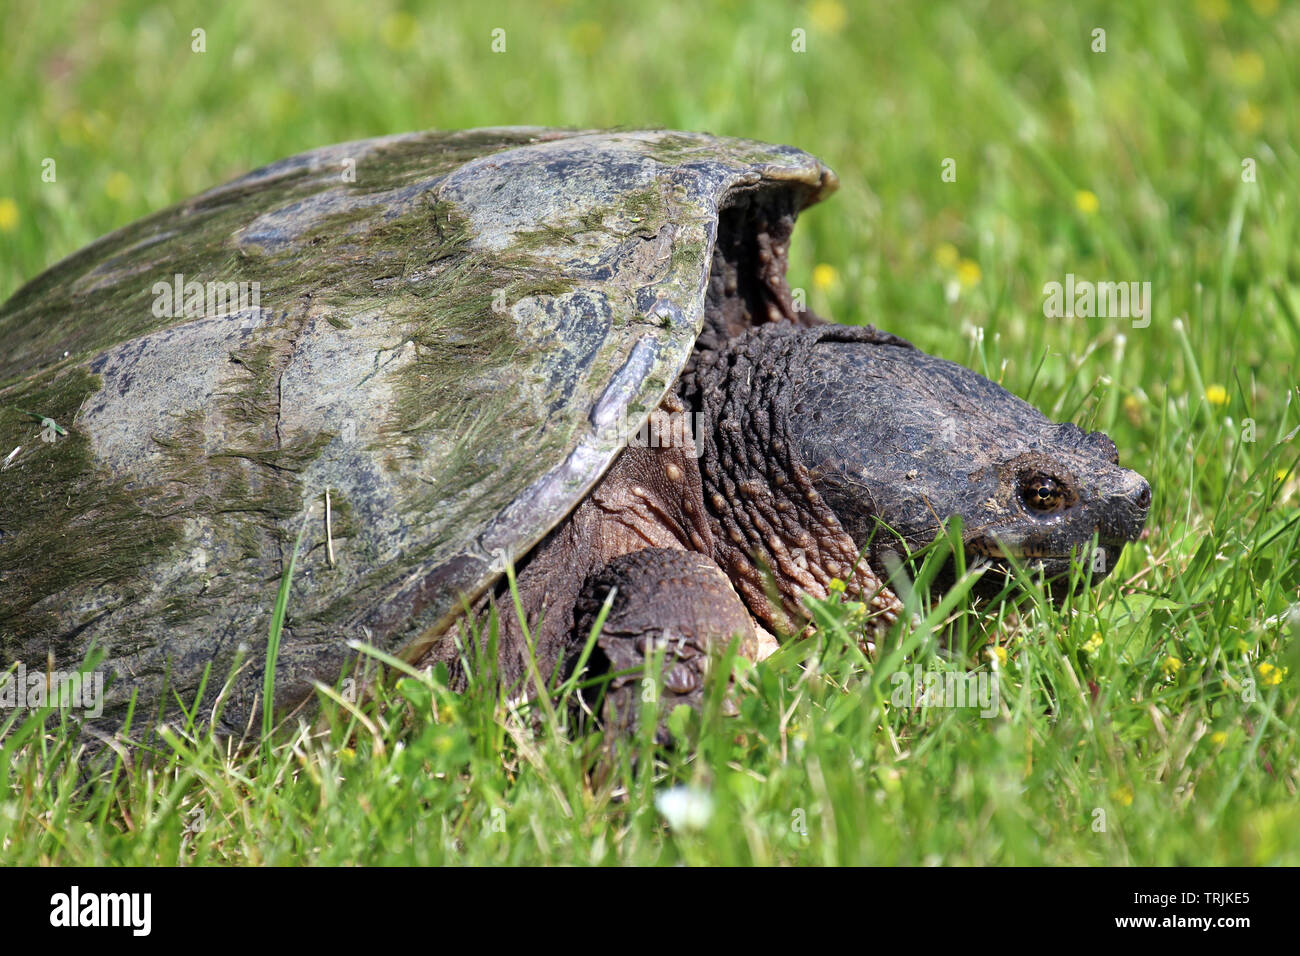 Close up, side view, of the head and shell of a large Common Snapping Turtle laying in the grass in Trevor, Wisconsin, USA, in the spring Stock Photo